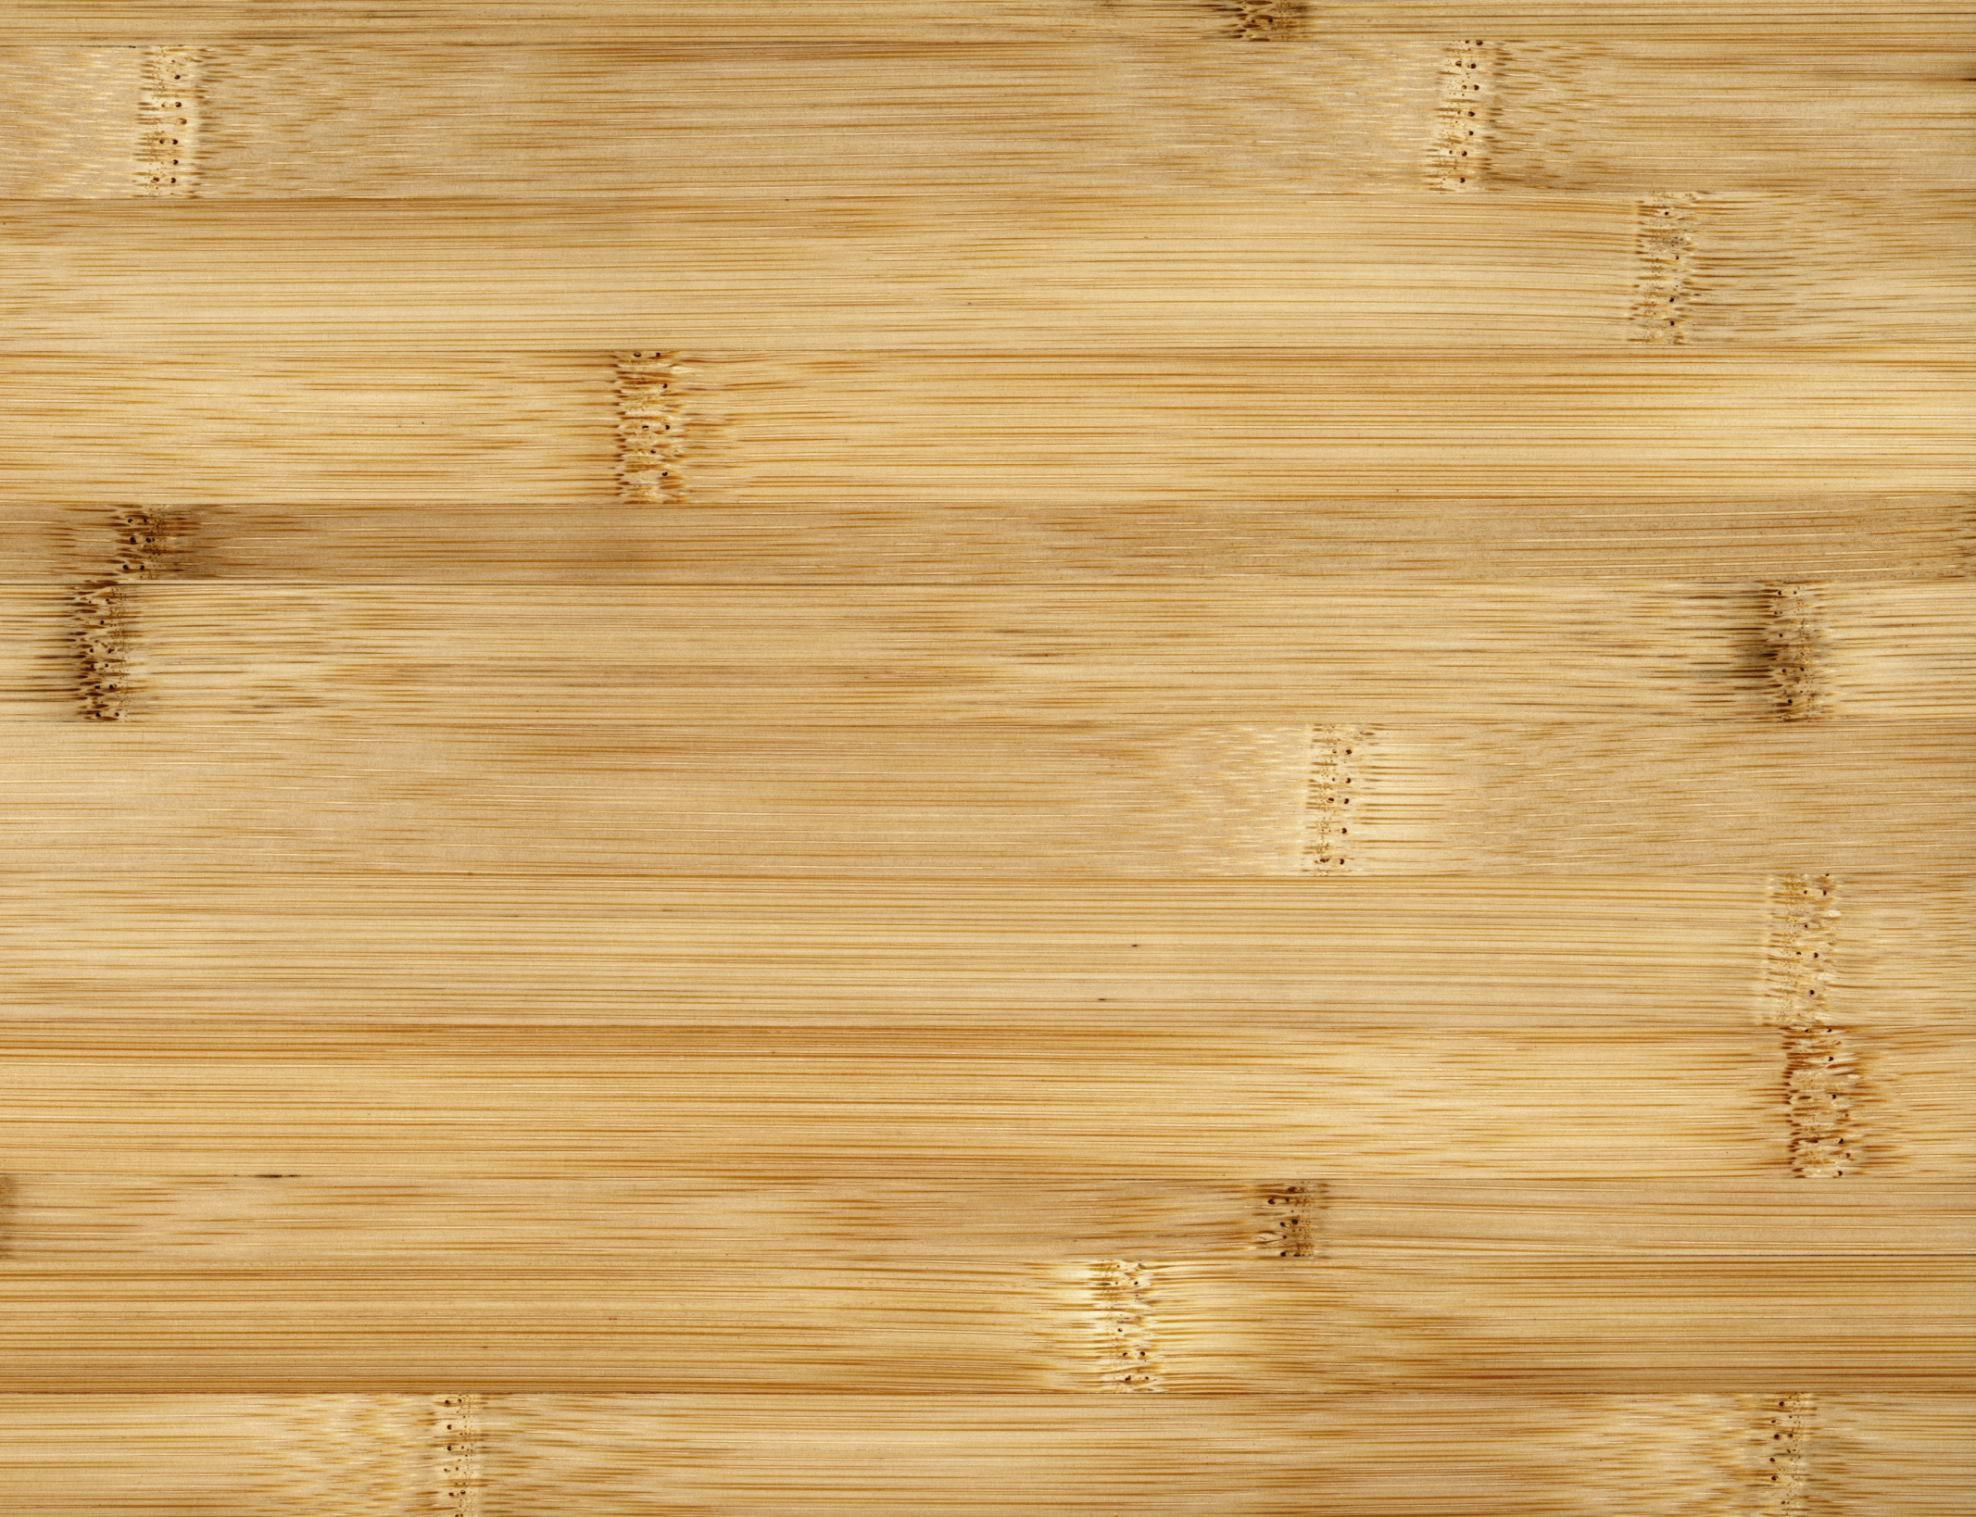 Bamboo Hardwood Flooring for Sale Of How to Clean Bamboo Flooring In 200266305 001 56a2fd815f9b58b7d0d000cd